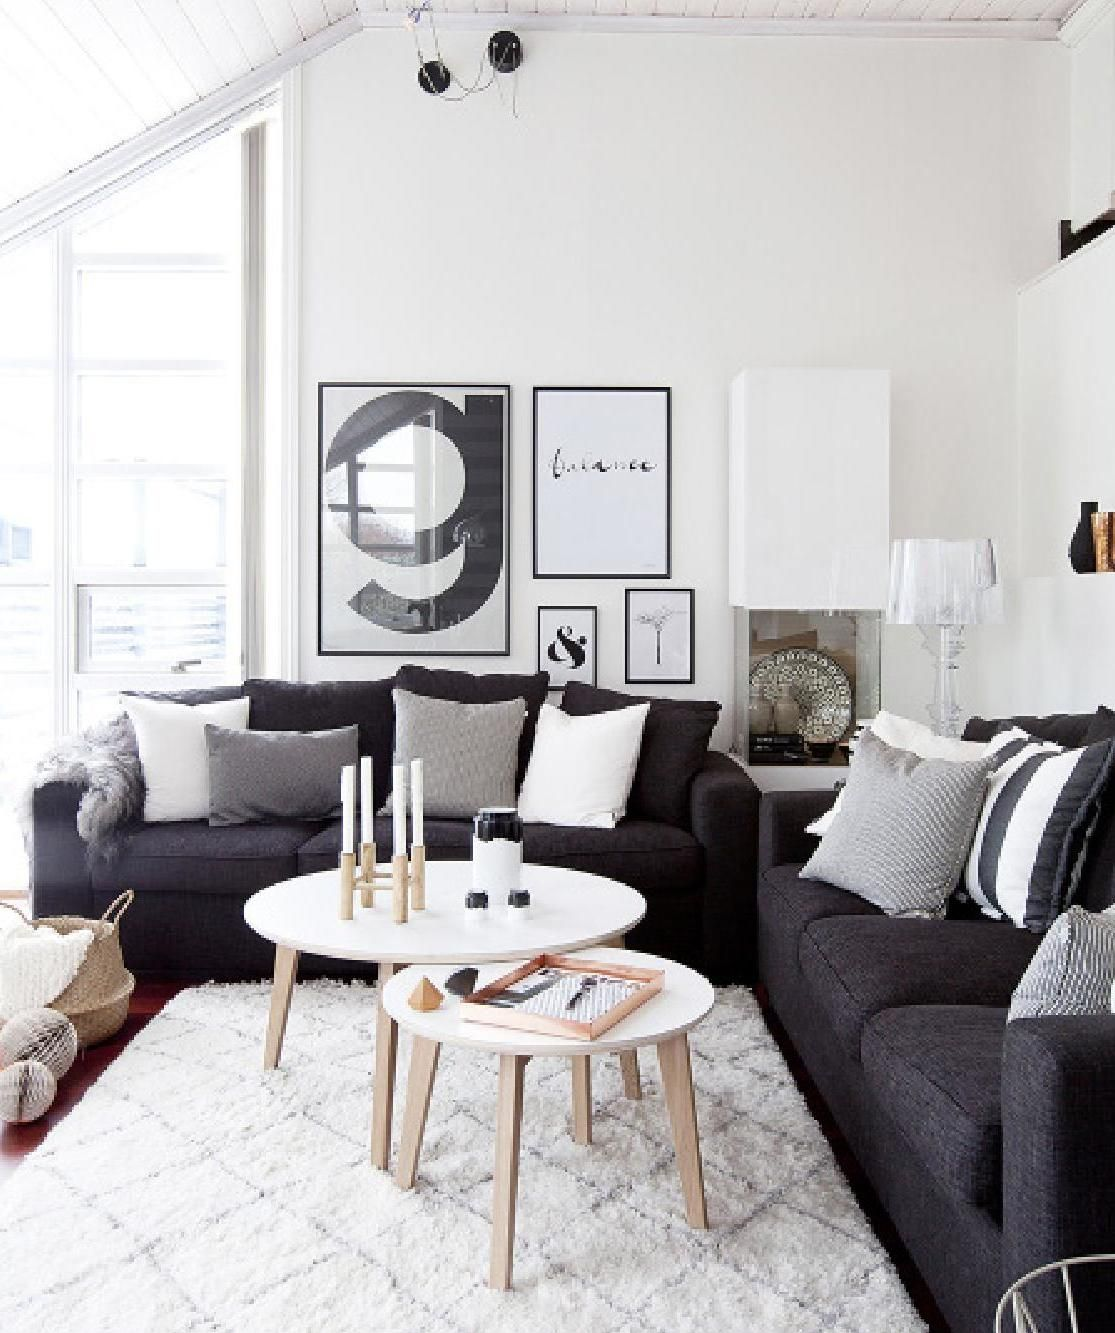 nibHJEMME Home Is Where The Heart Is Pinterest Living rooms